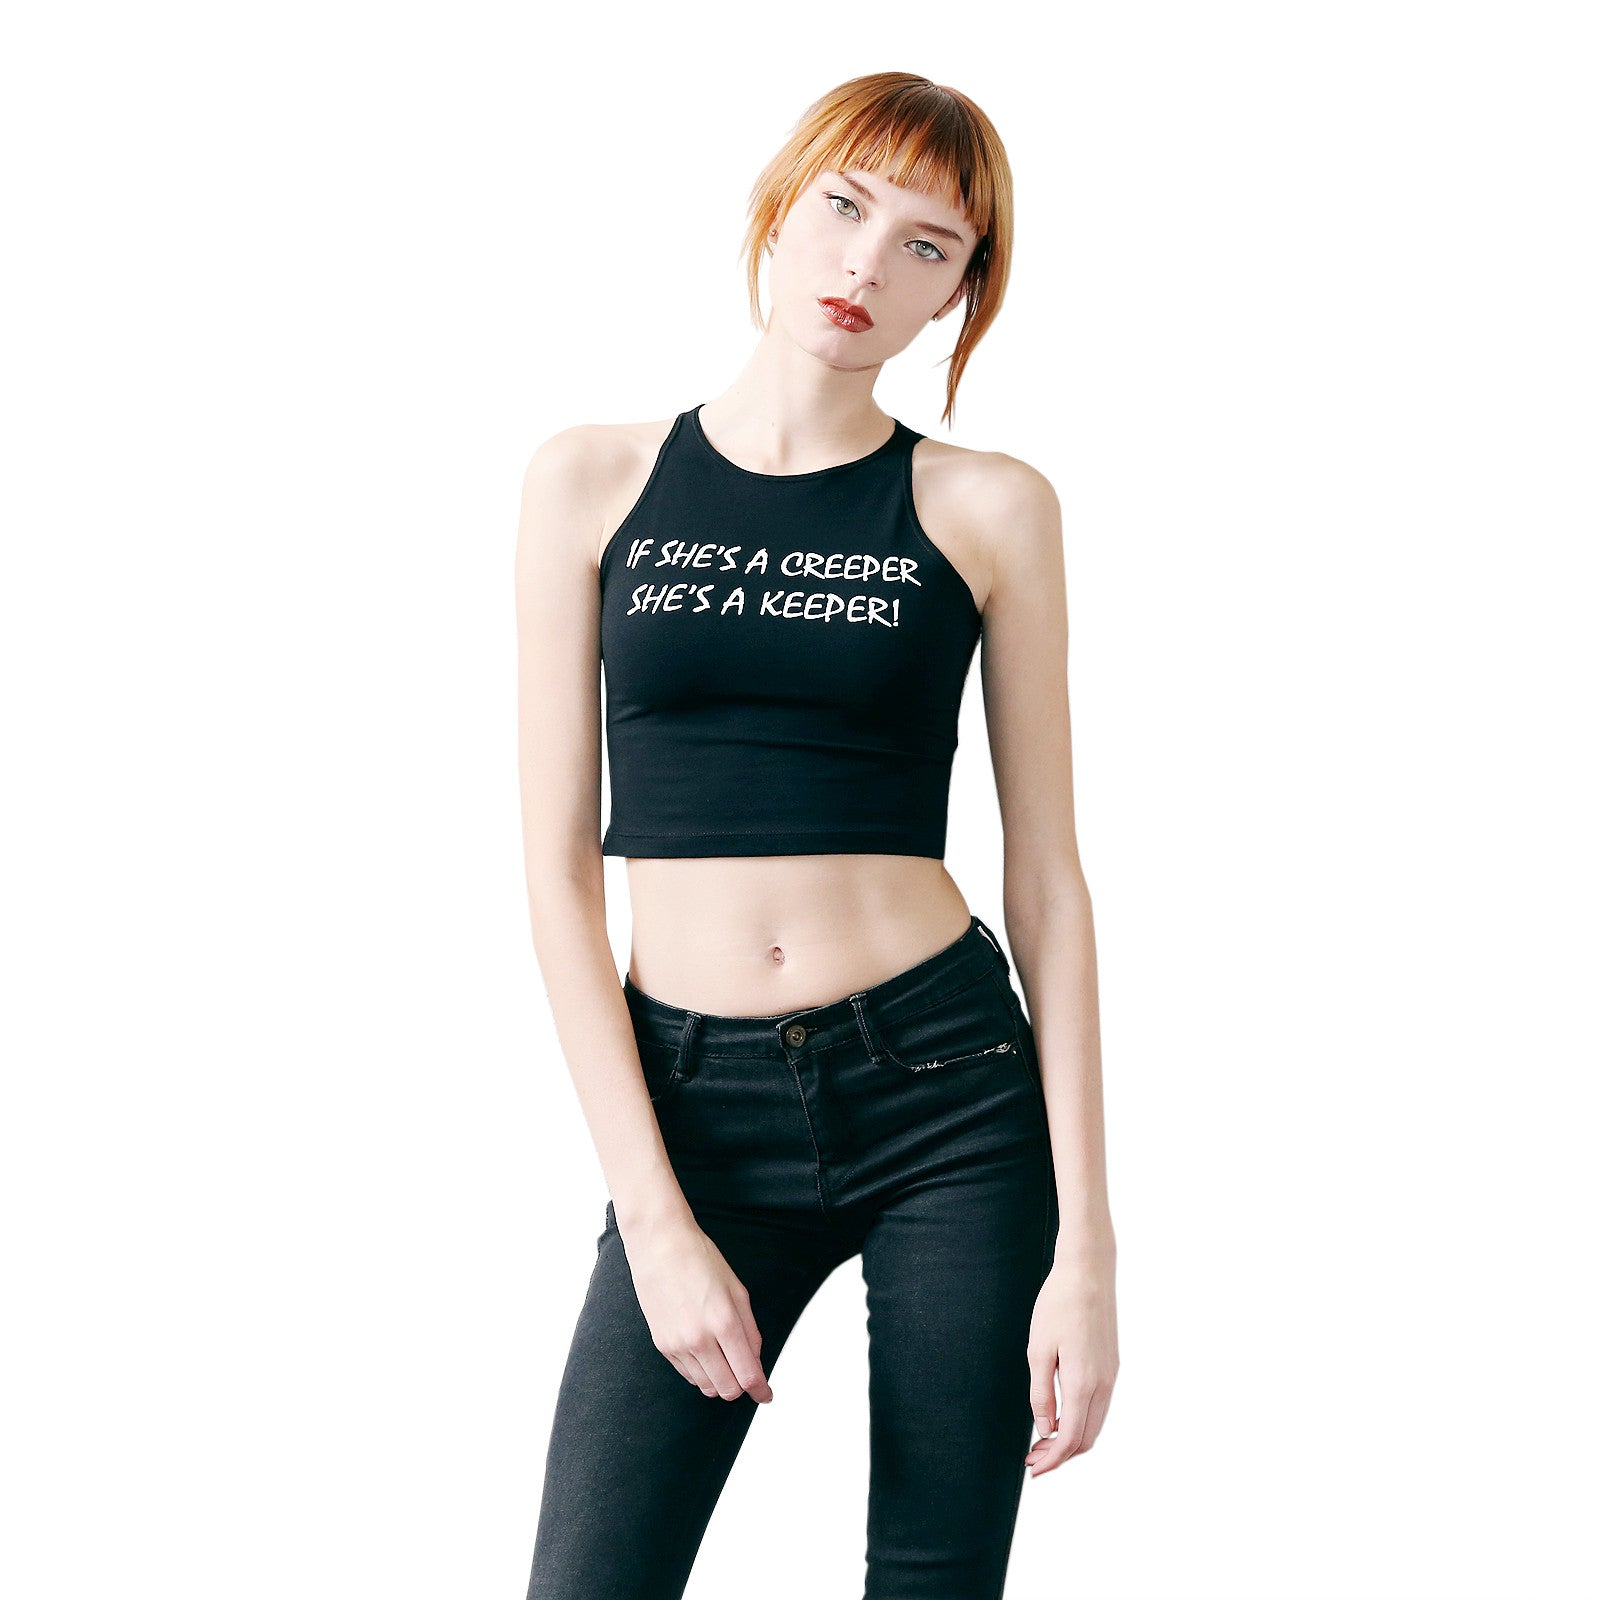 CREEPER KEEPER SLEEVELESS CROP TOP